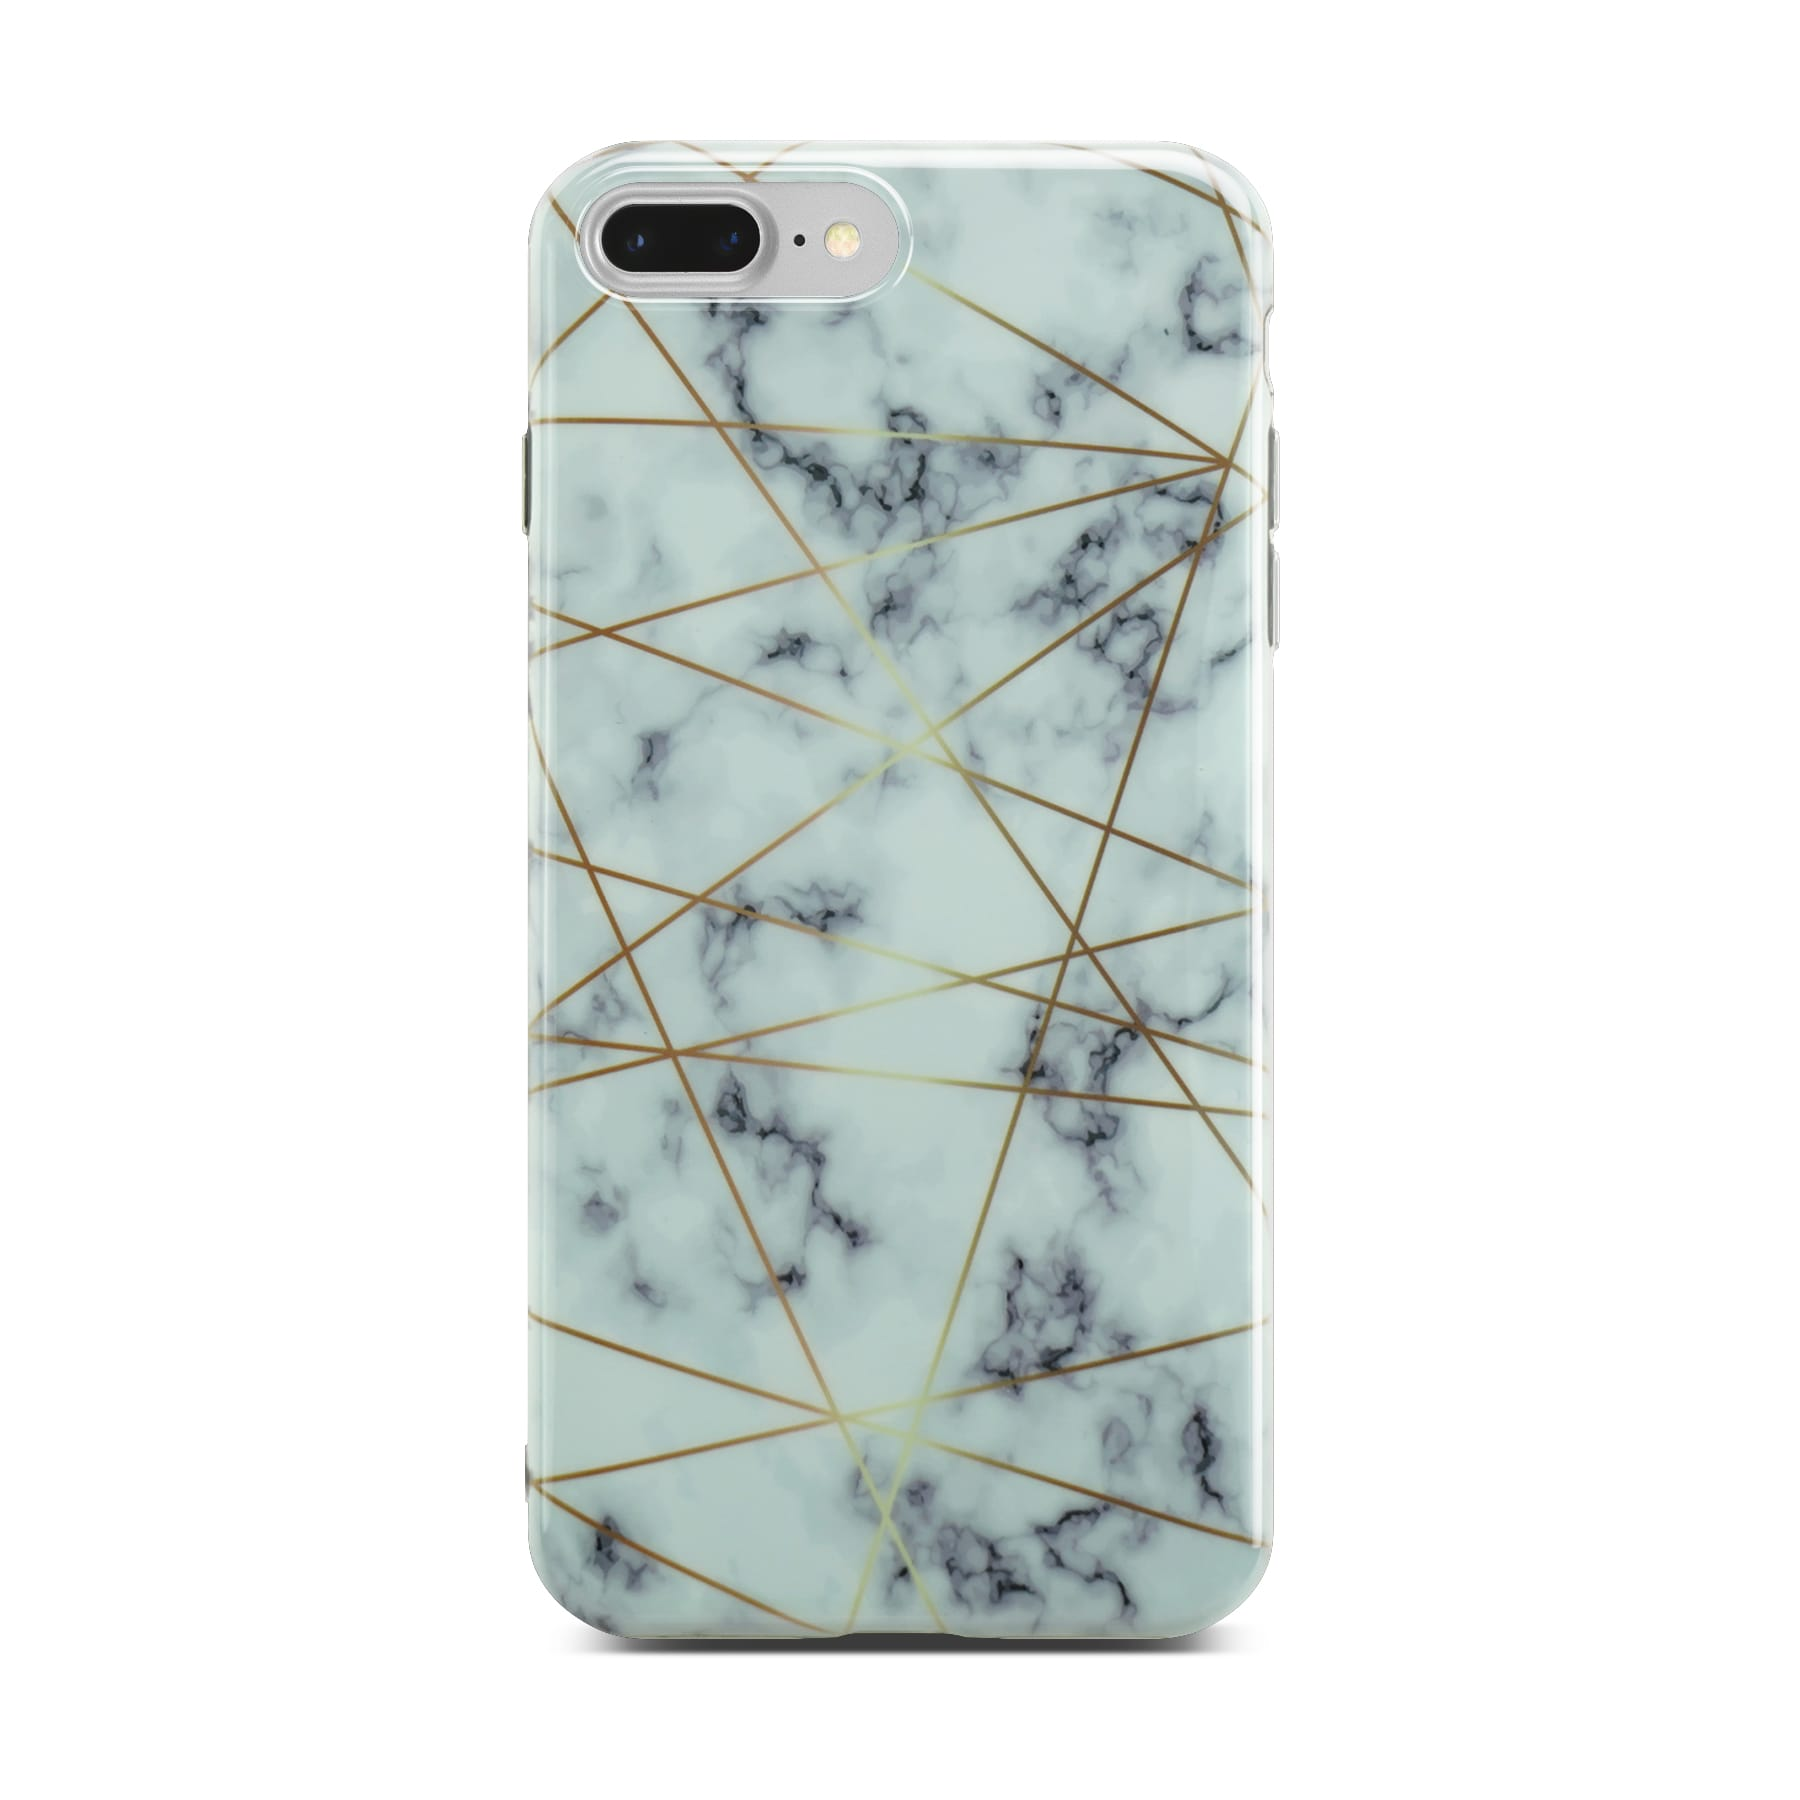 White Glossy Marble Case with Golden Lines On Silver iPhone 8 Plus